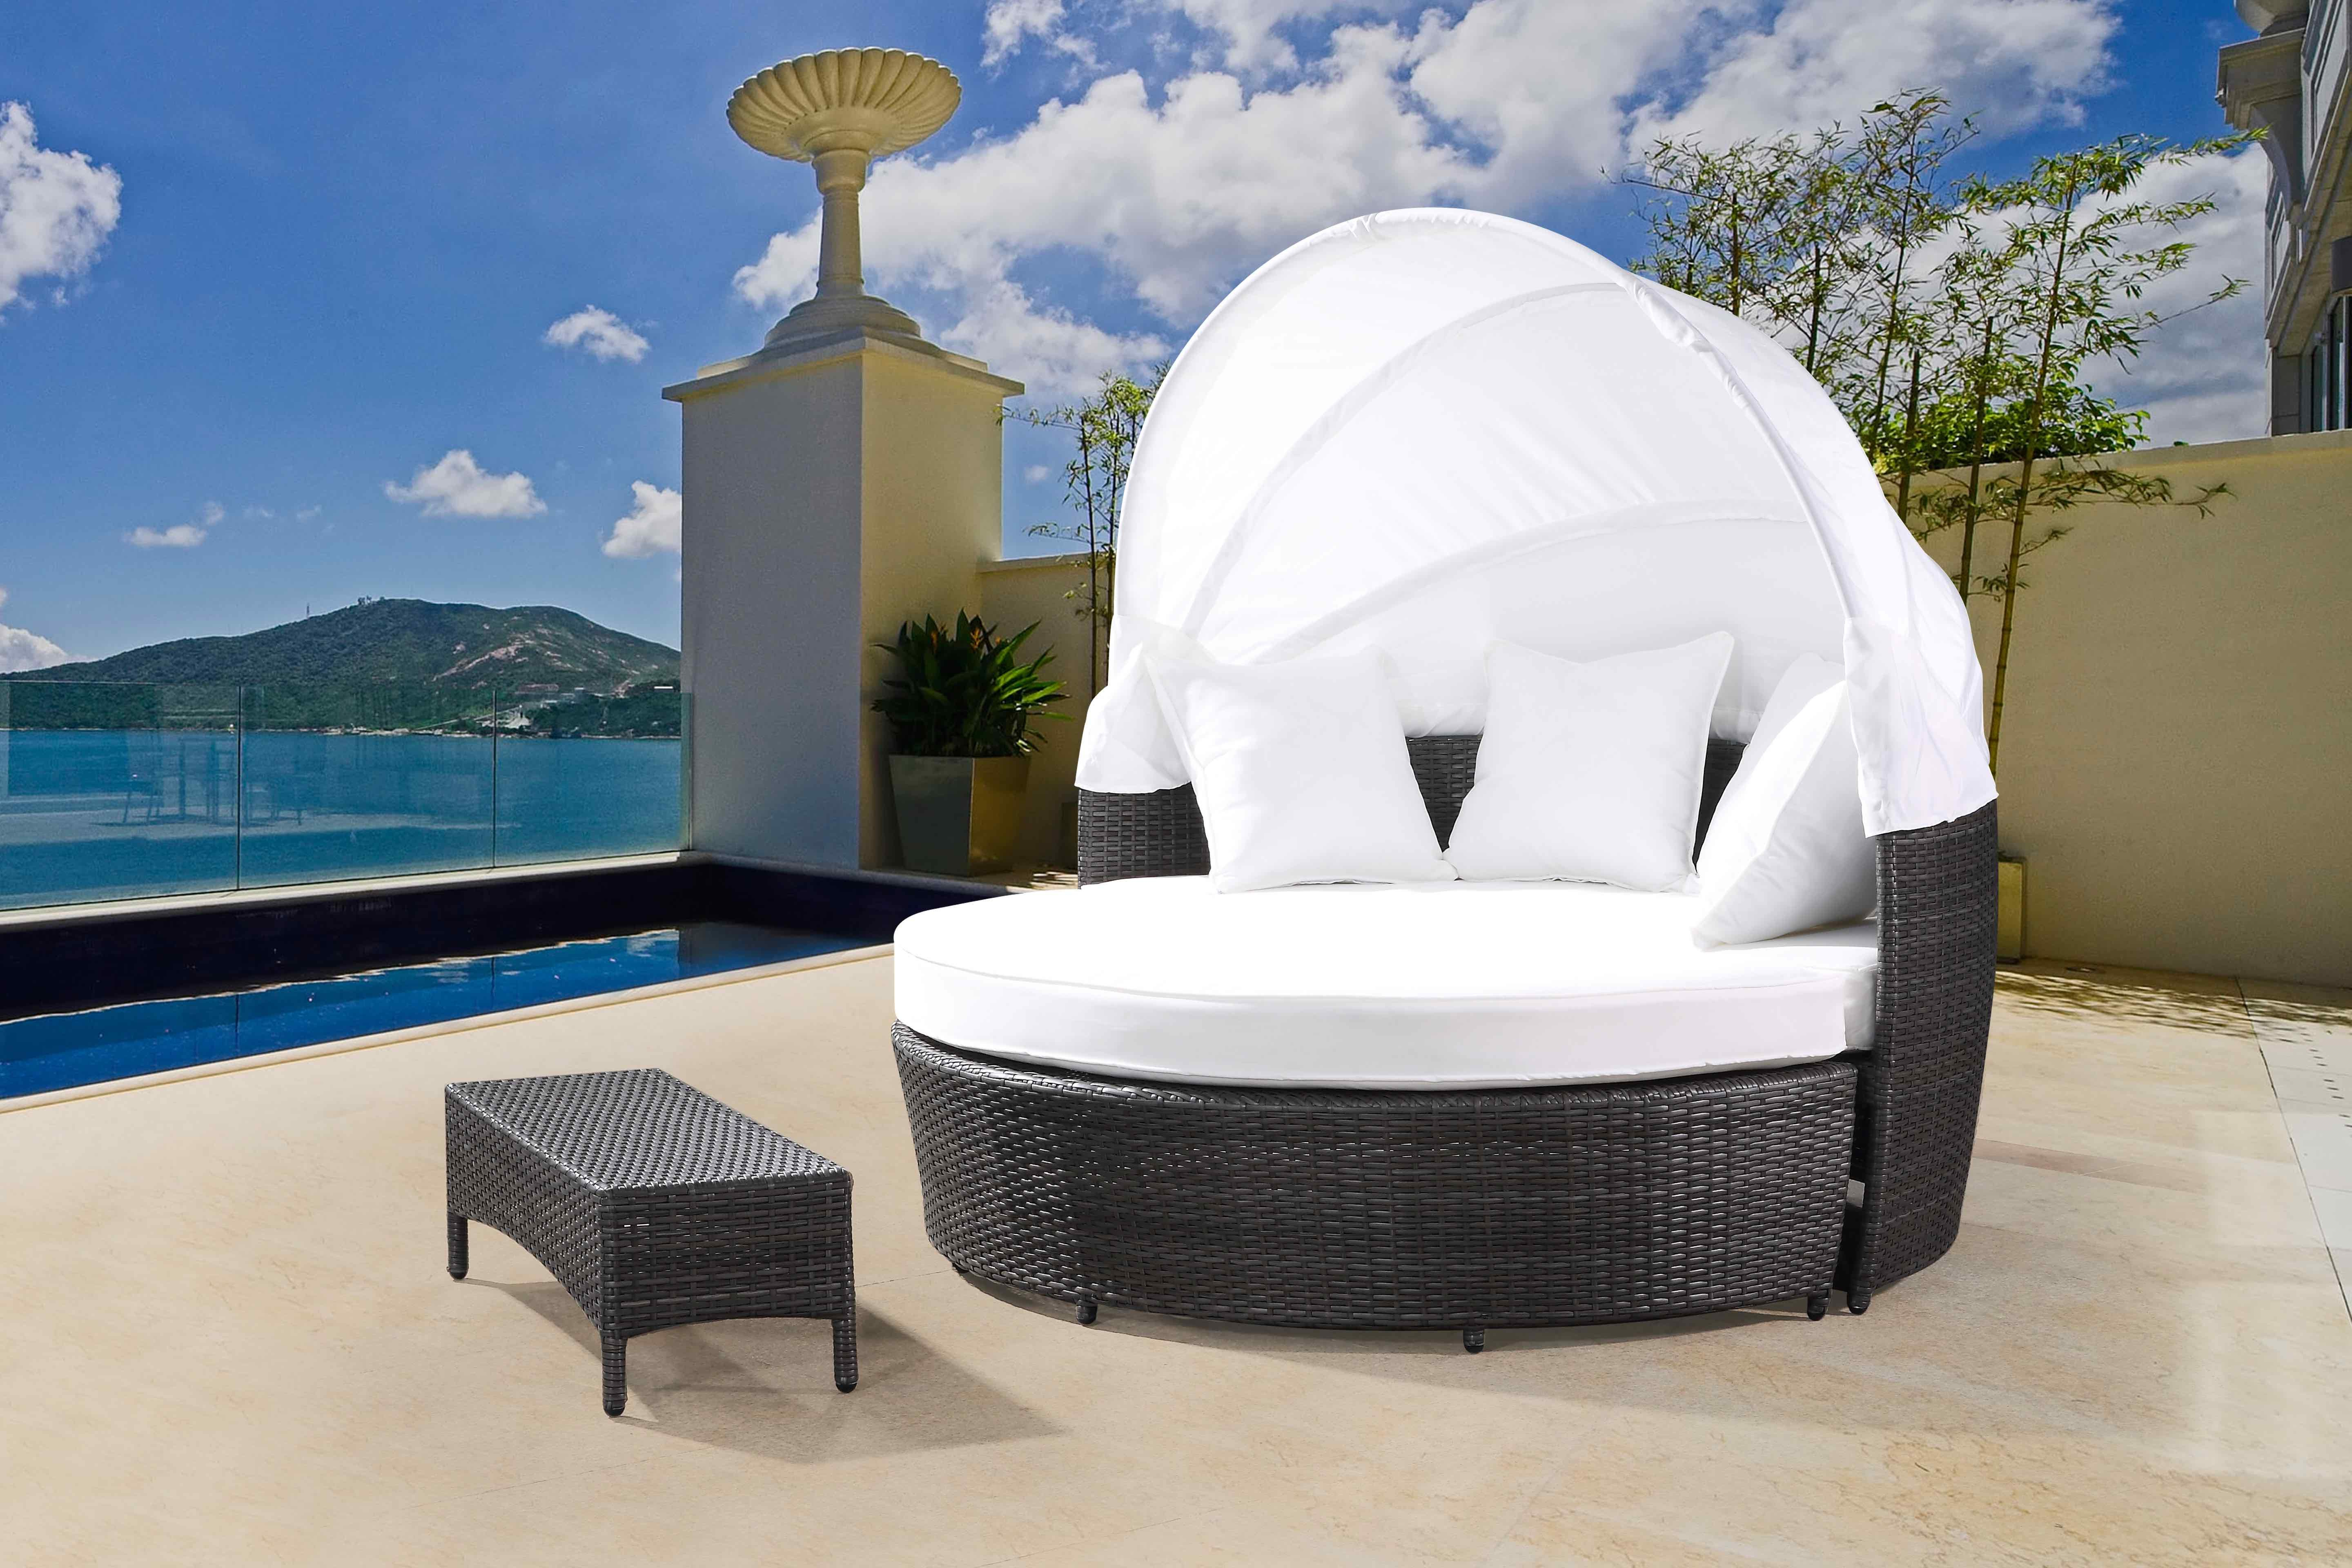 Popular Harlow Patio Daybeds With Cushions With Carrasco Patio Daybed With Cushions (View 17 of 20)